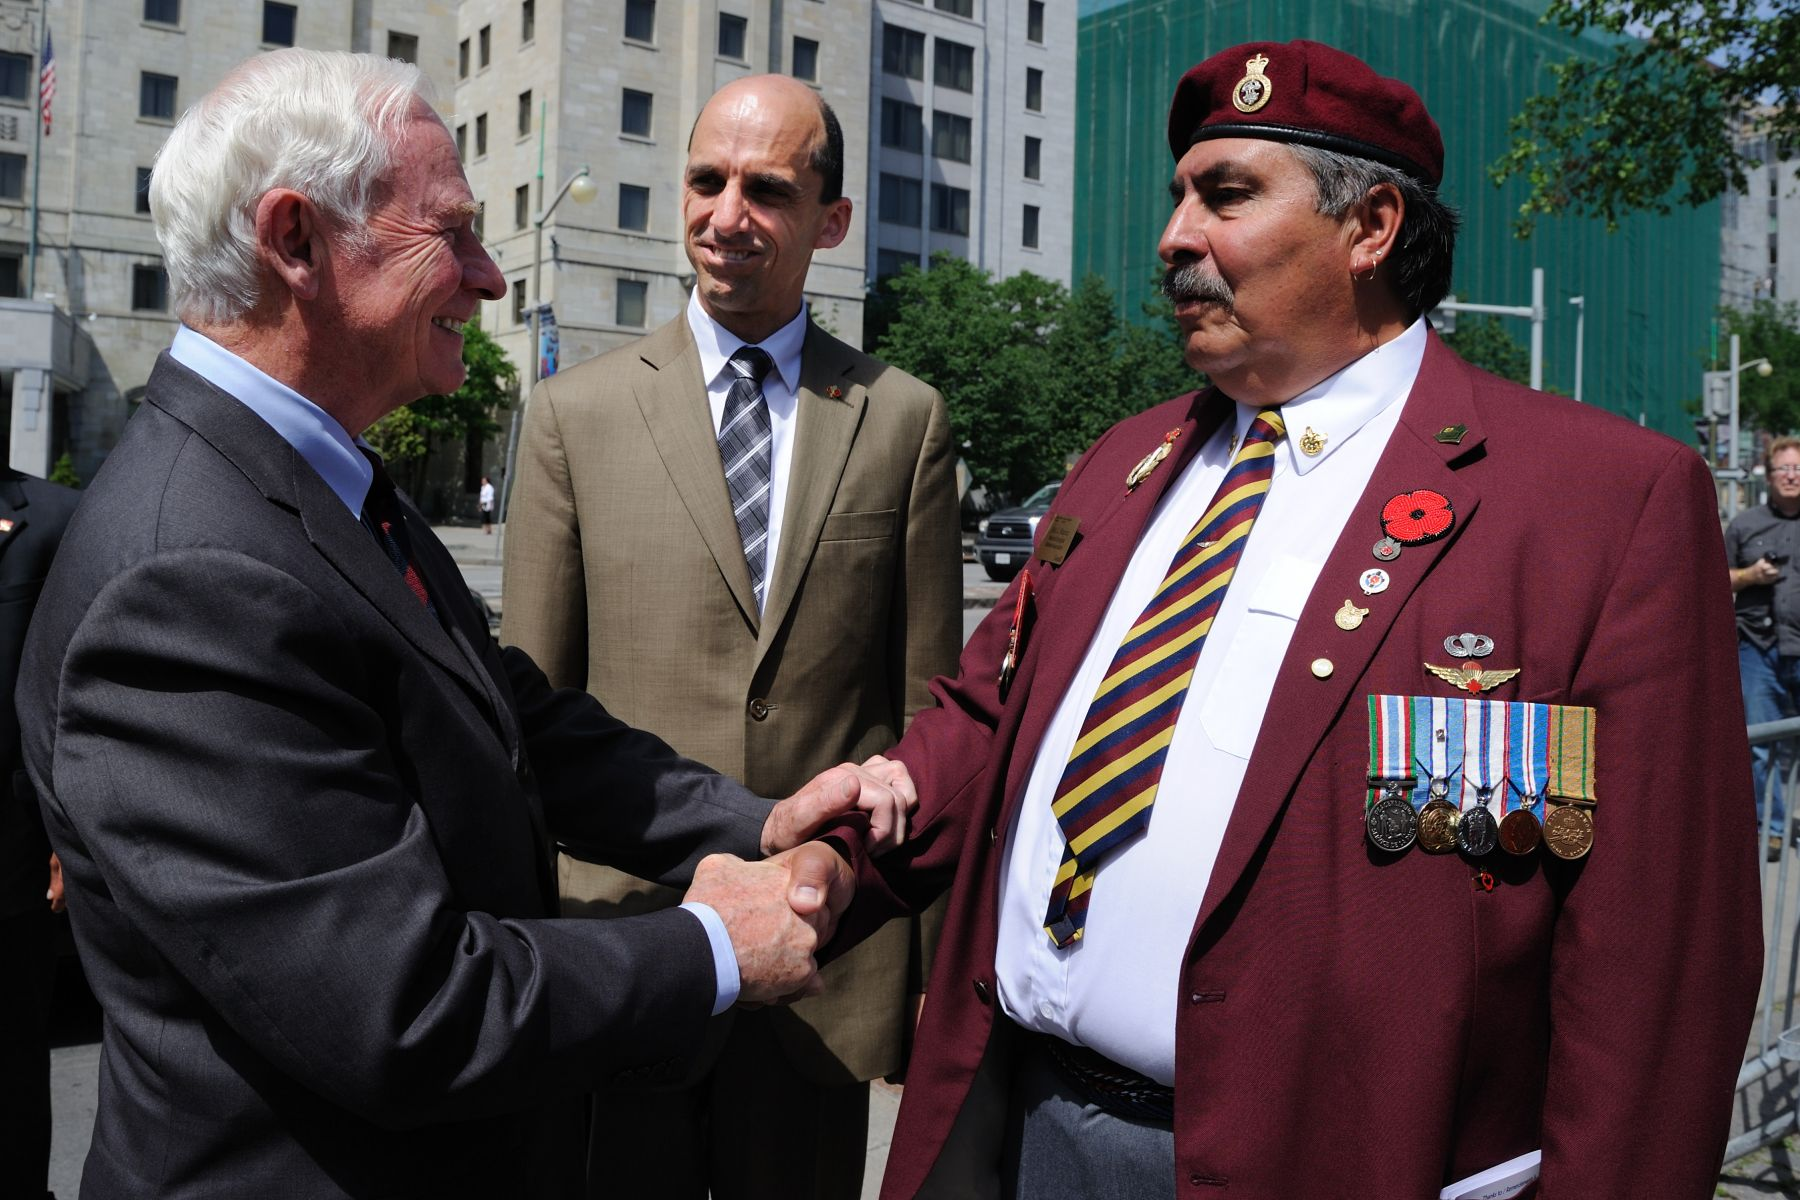 On the occasion of National Aboriginal Day, Their Excellencies participated in the 10th annual Ceremony of Remembrance at the National Aboriginal Veterans Monument in Ottawa. The Honourable Steven Blaney (middle), Minister of Veterans Affairs, also attended the ceremony.